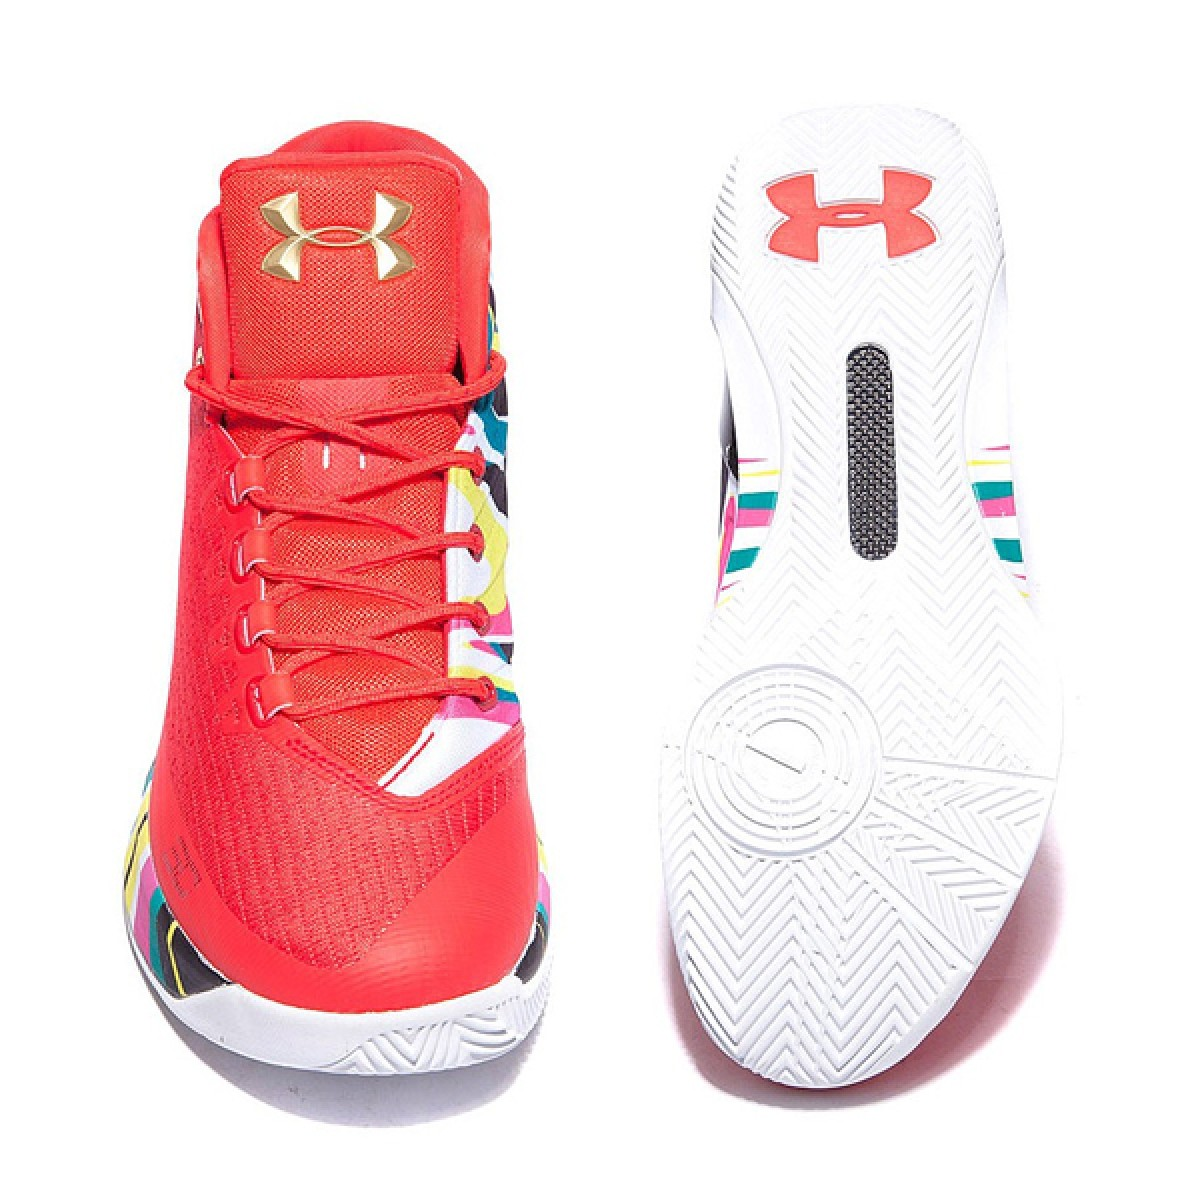 Under Armour Curry 3 GS 'CNY' 1274061-984